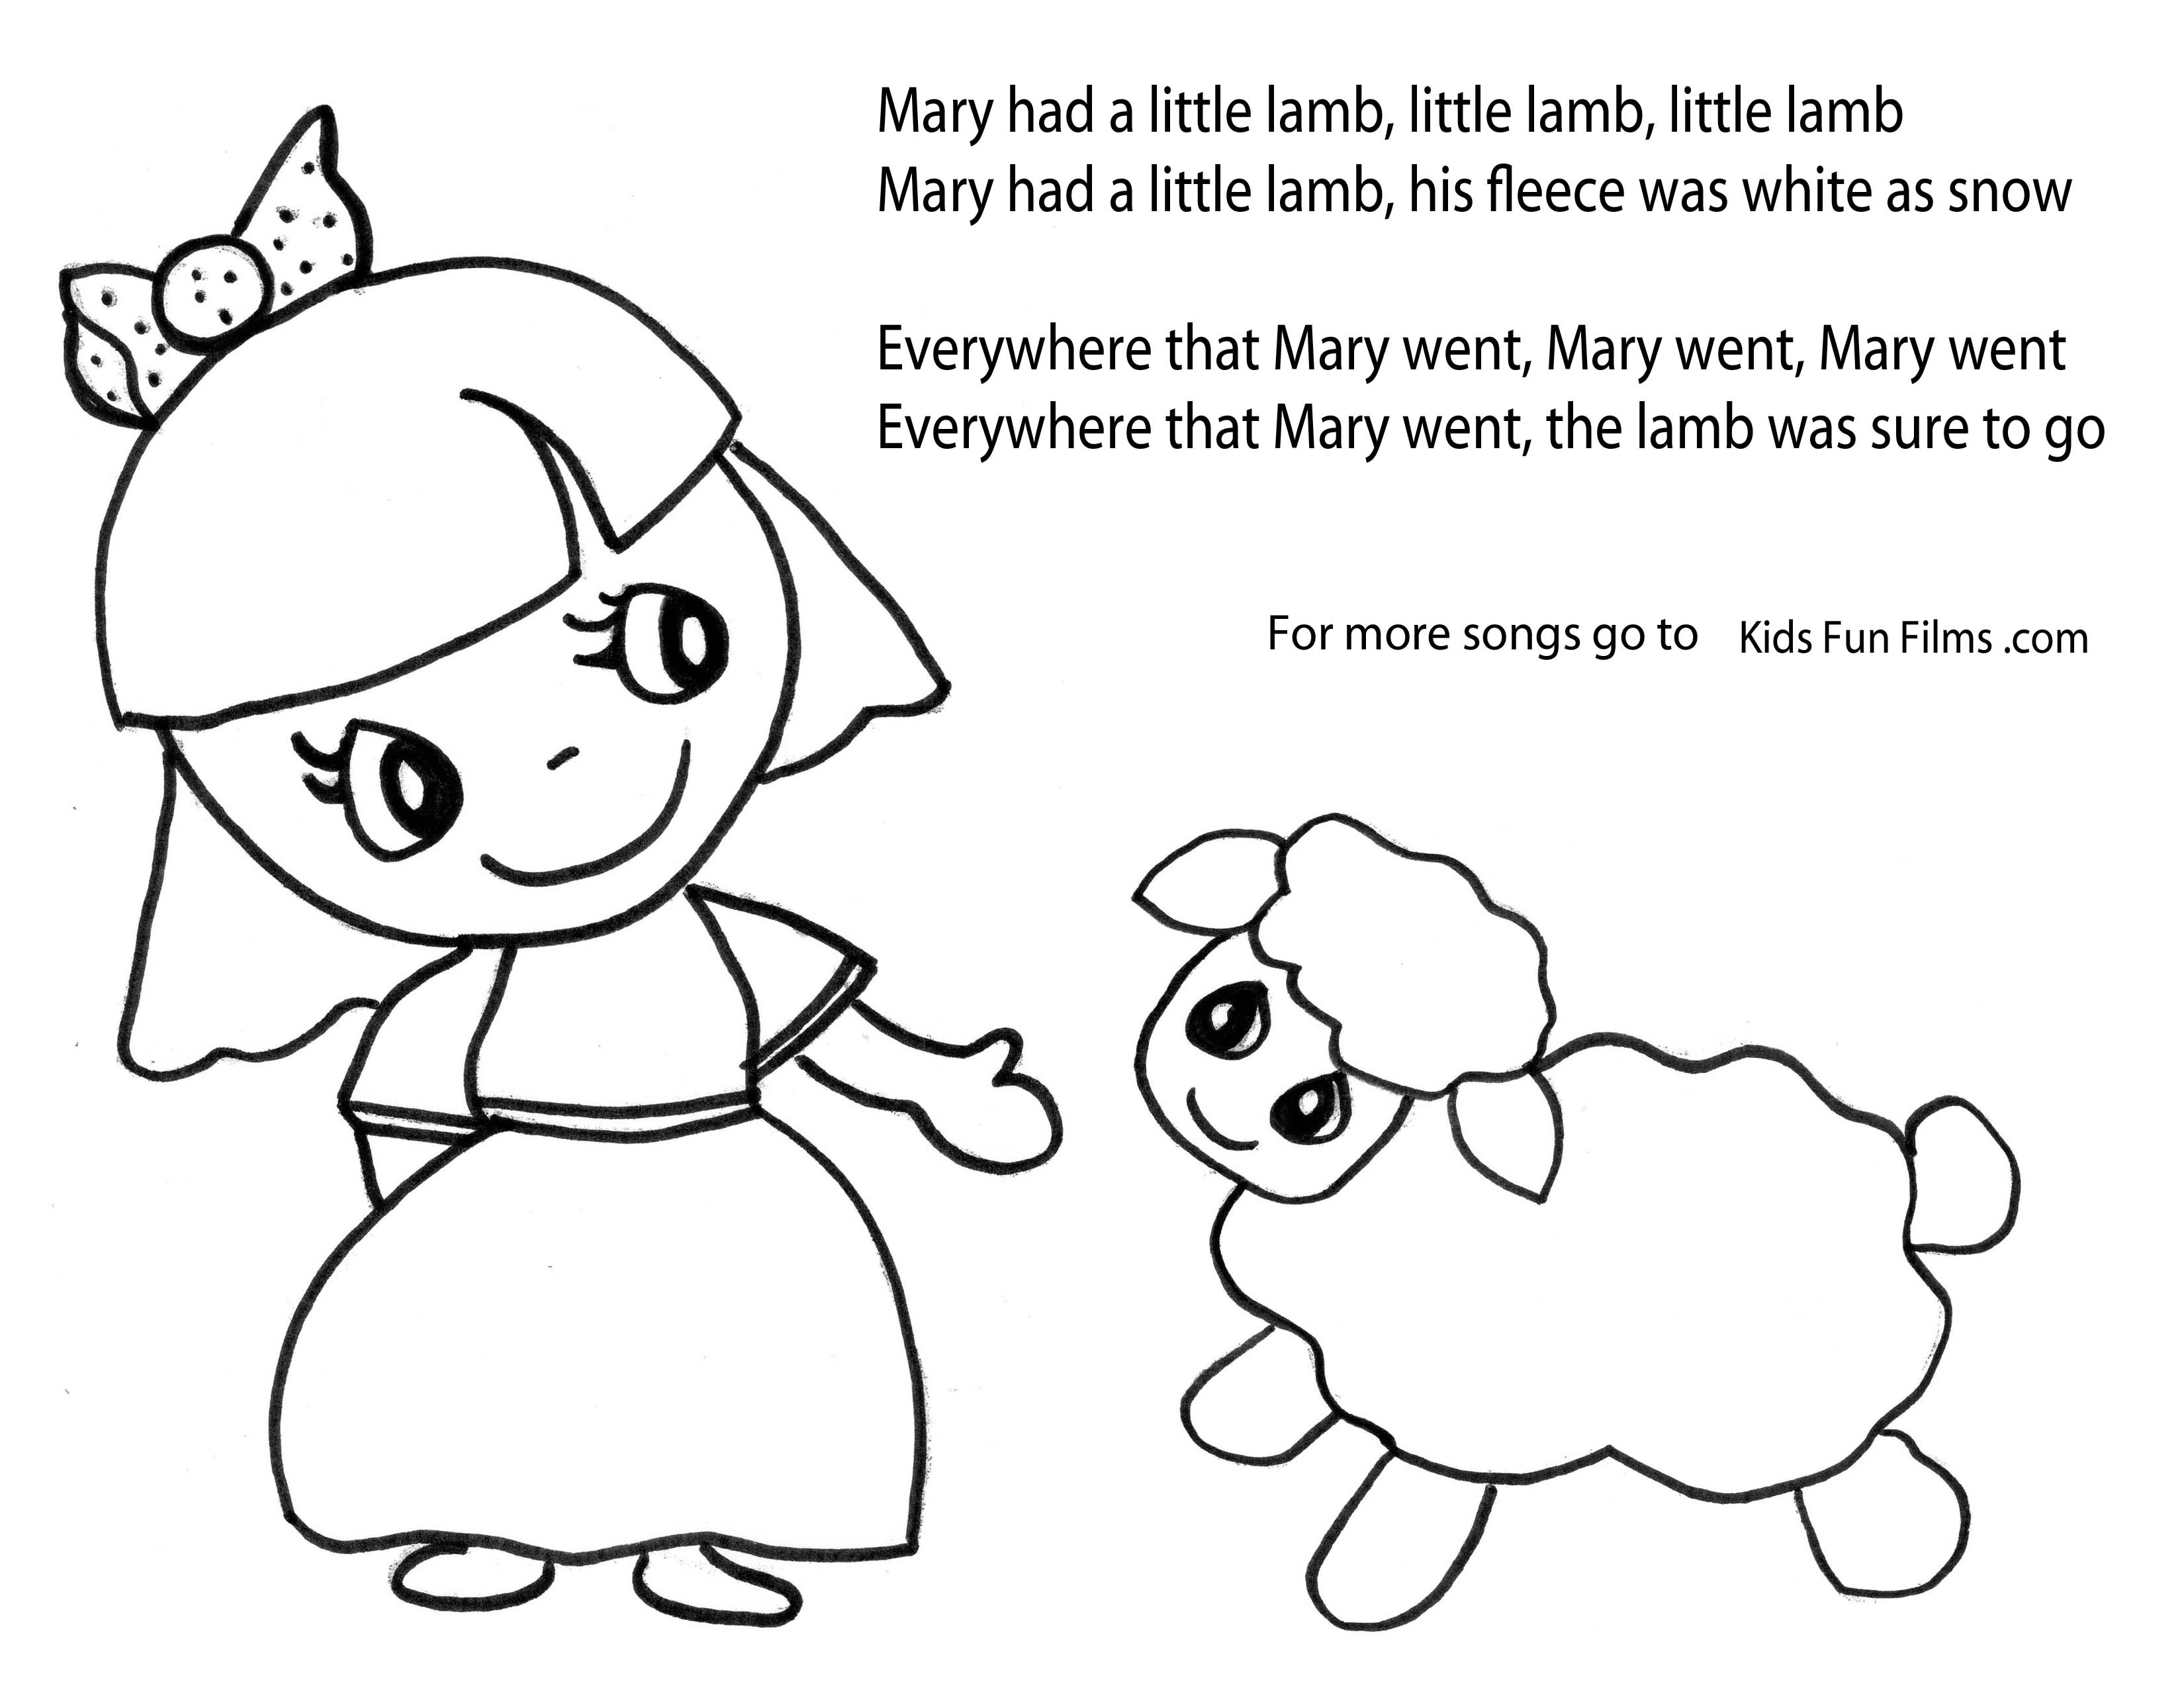 coloring page sheets mary had a popular store kids fun films